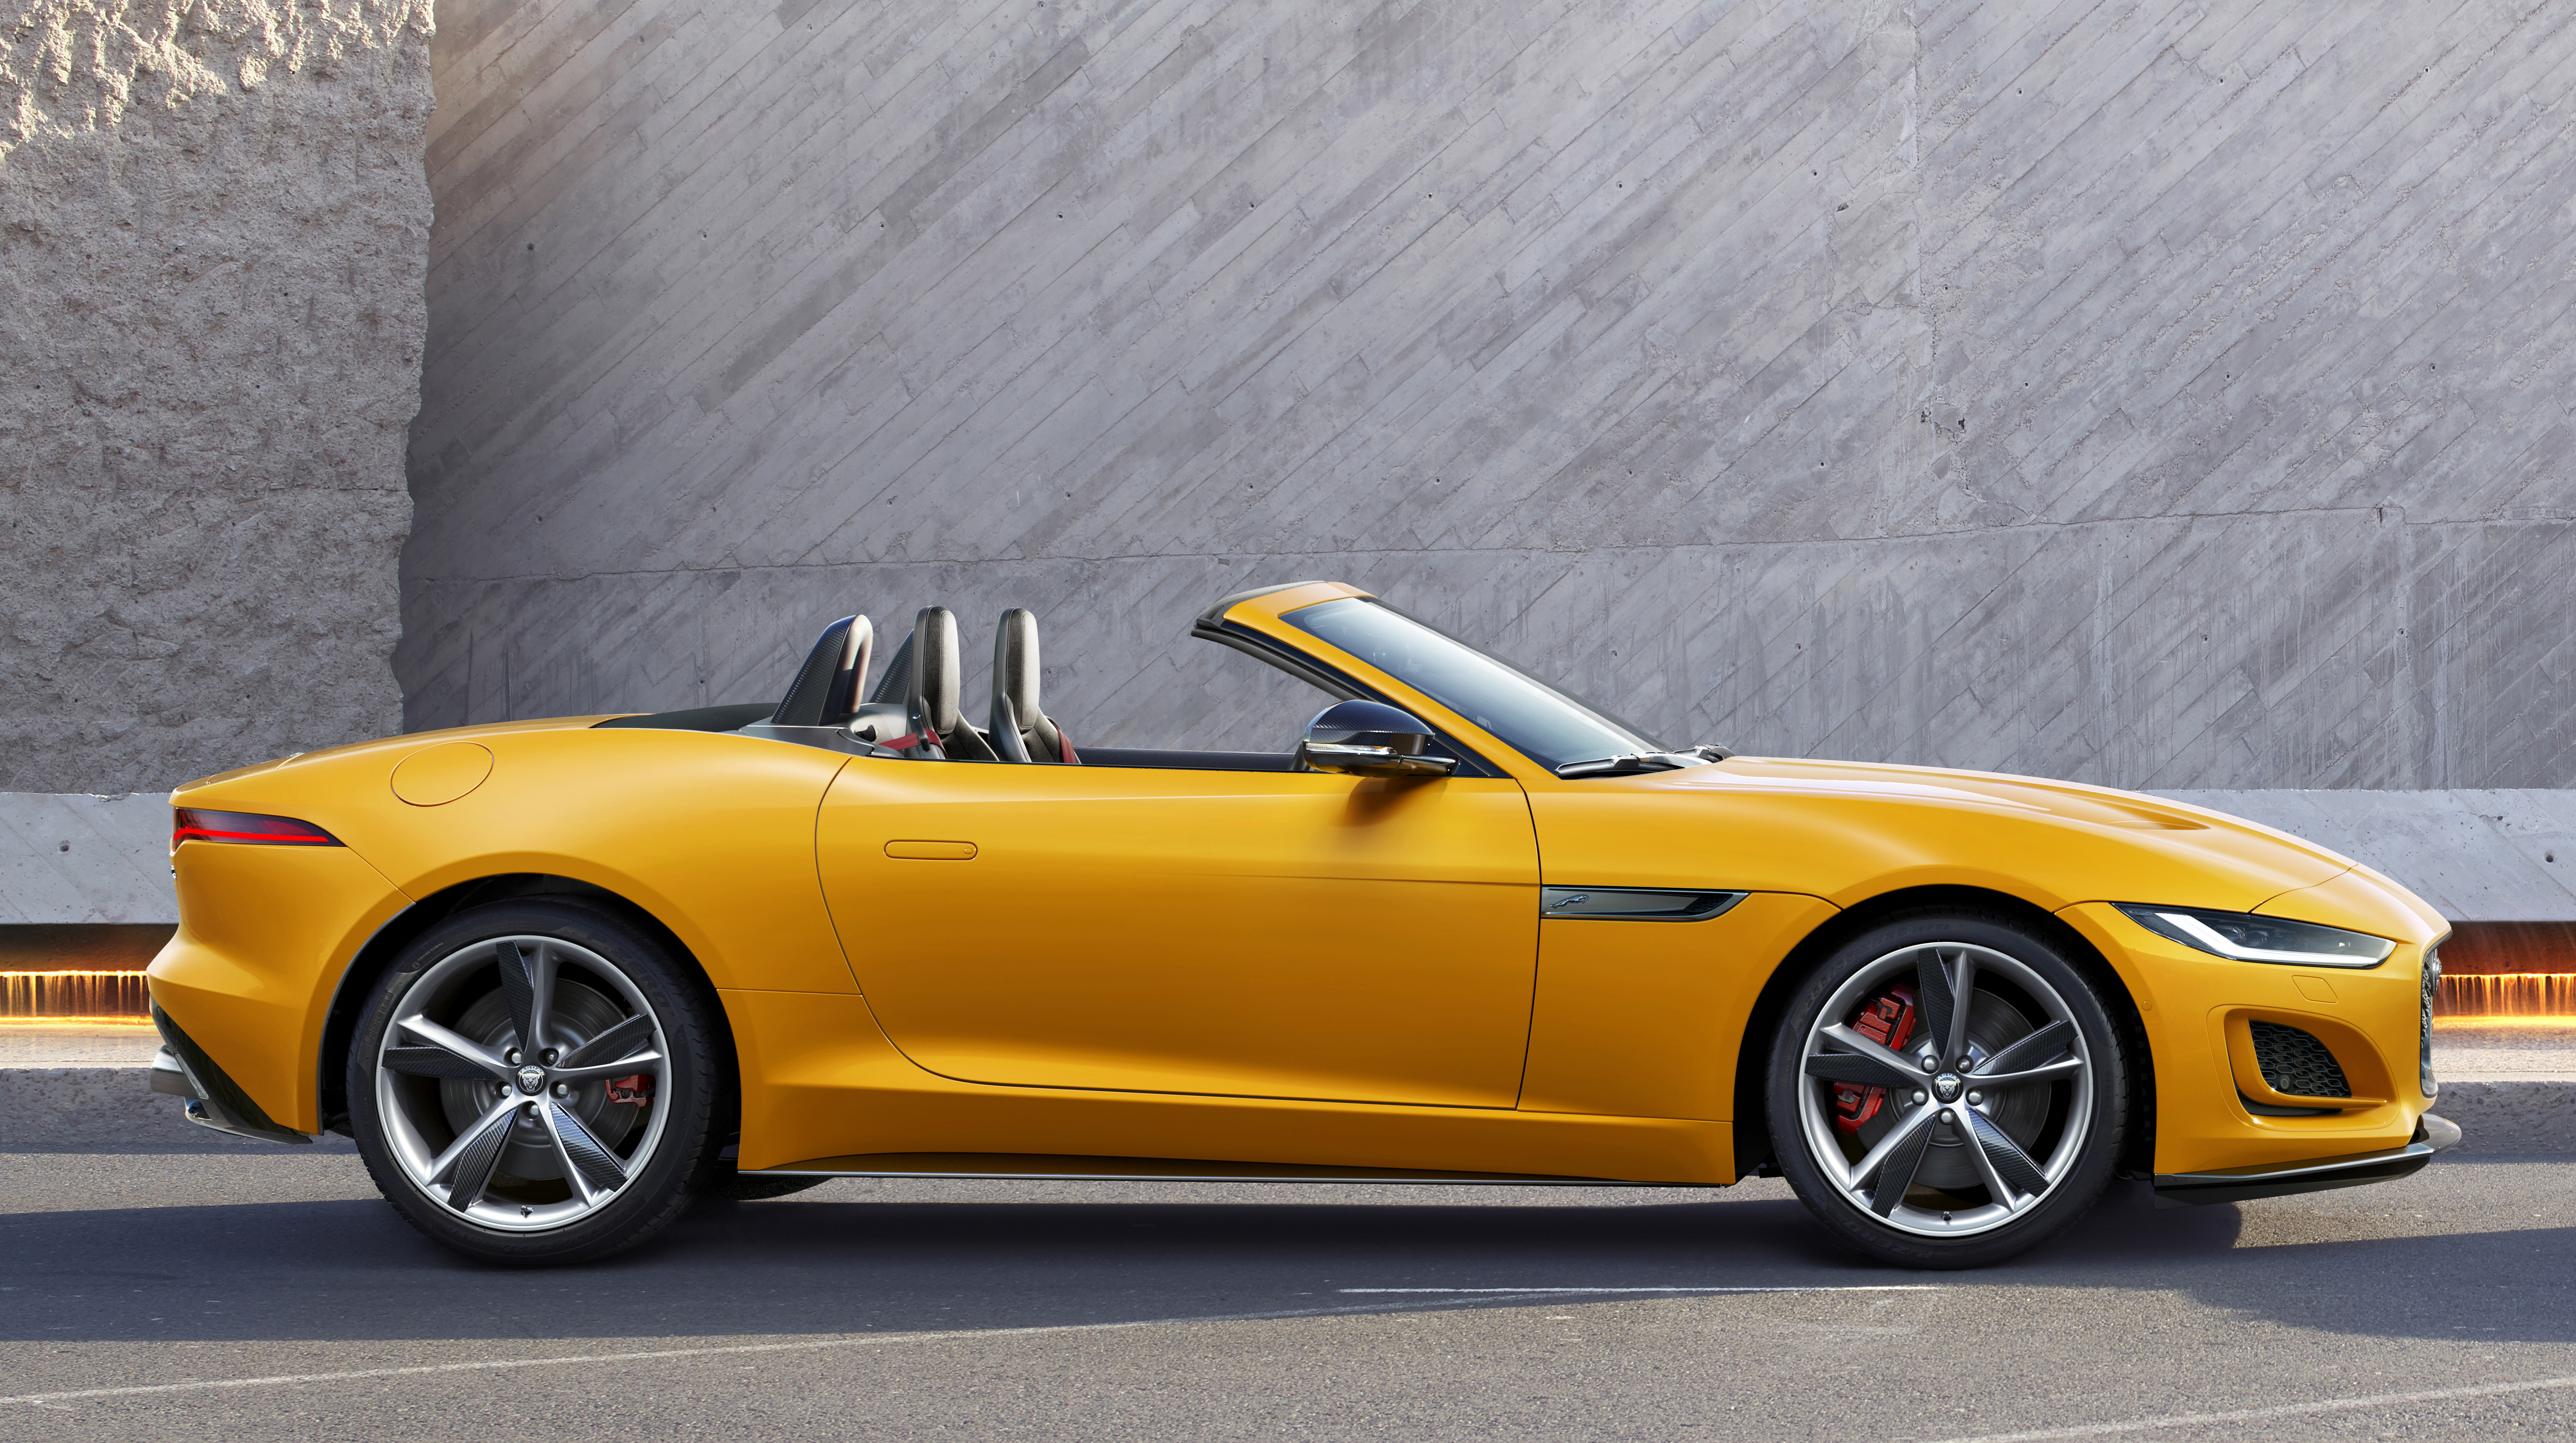 Jaguar F-Type Convertible mod specifications